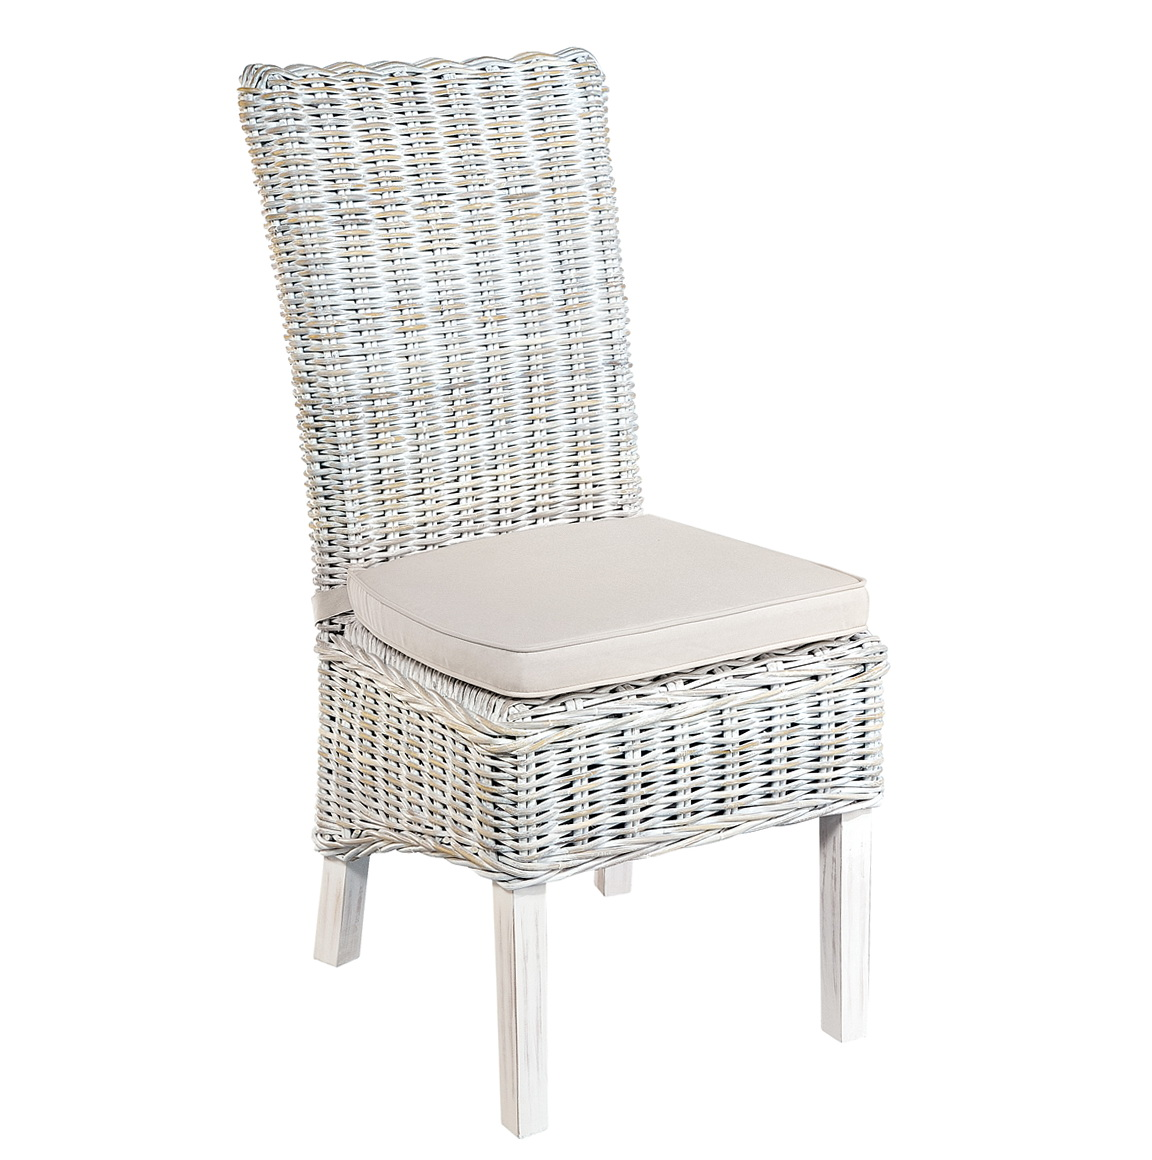 deck chair replacement covers australia white rocking nursery cushions for wicker furniture home